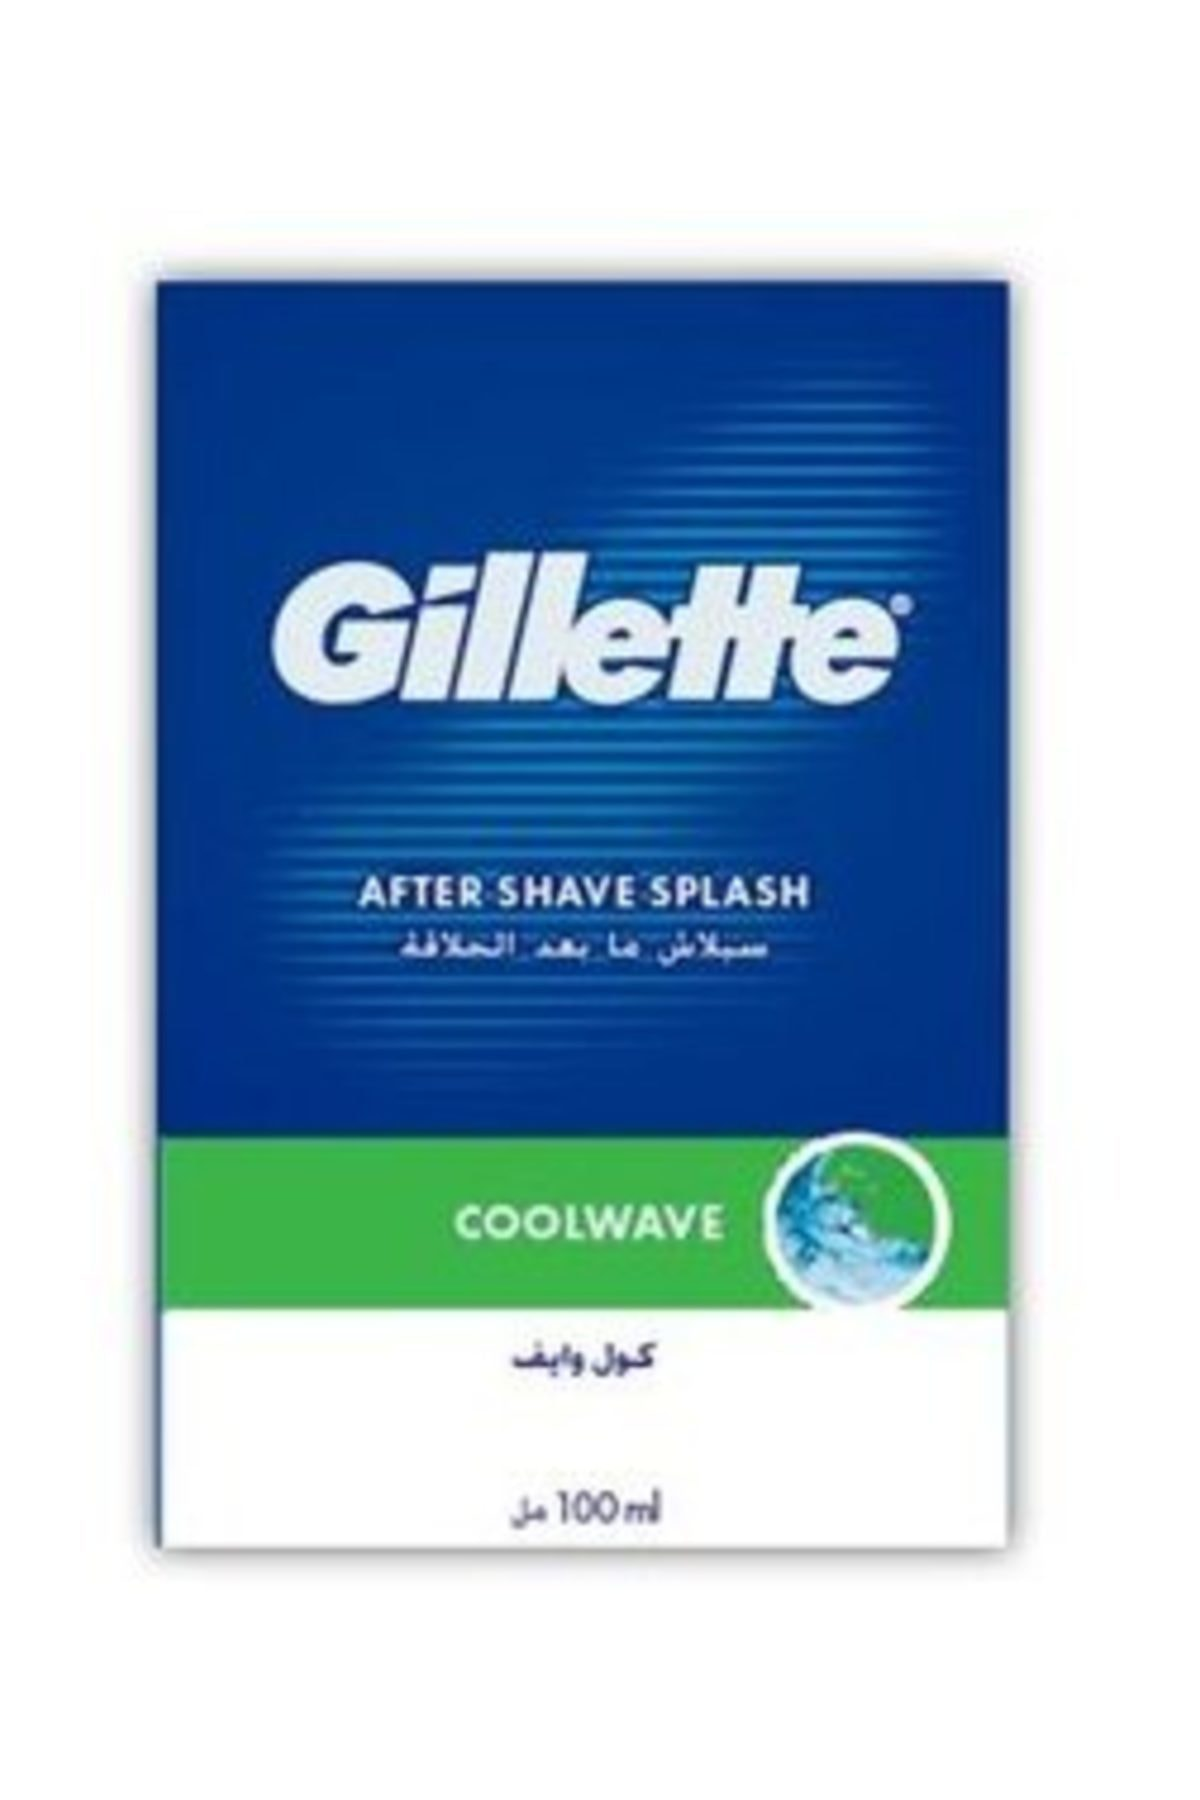 Gillette After Shave Splash Coolwave Tıraş Losyonu 100ml 1